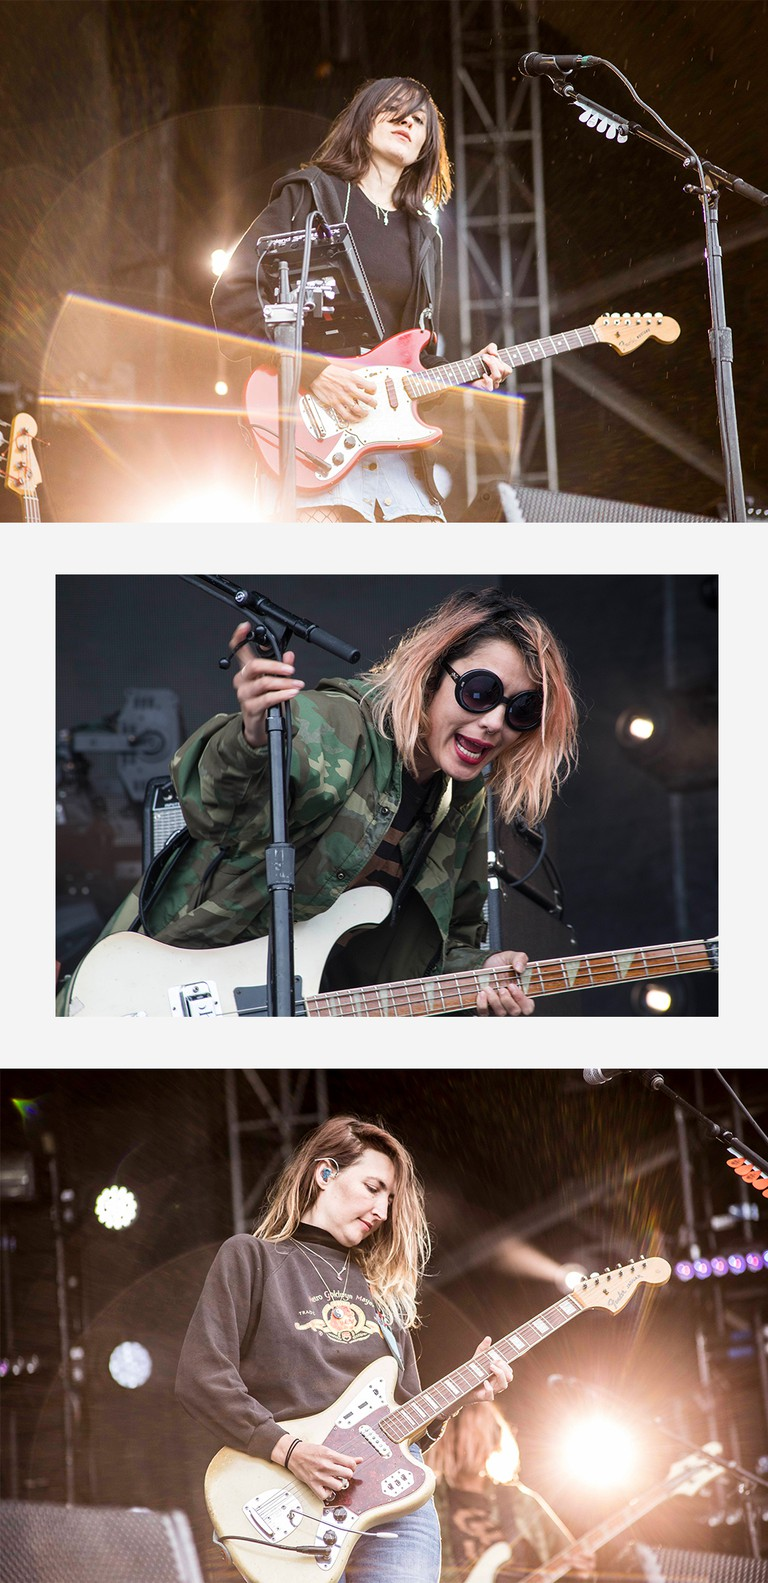 Sunday started off grey and rainy, but that didn't stop anyone from seeing Warpaint, who played on the Big Apple stage